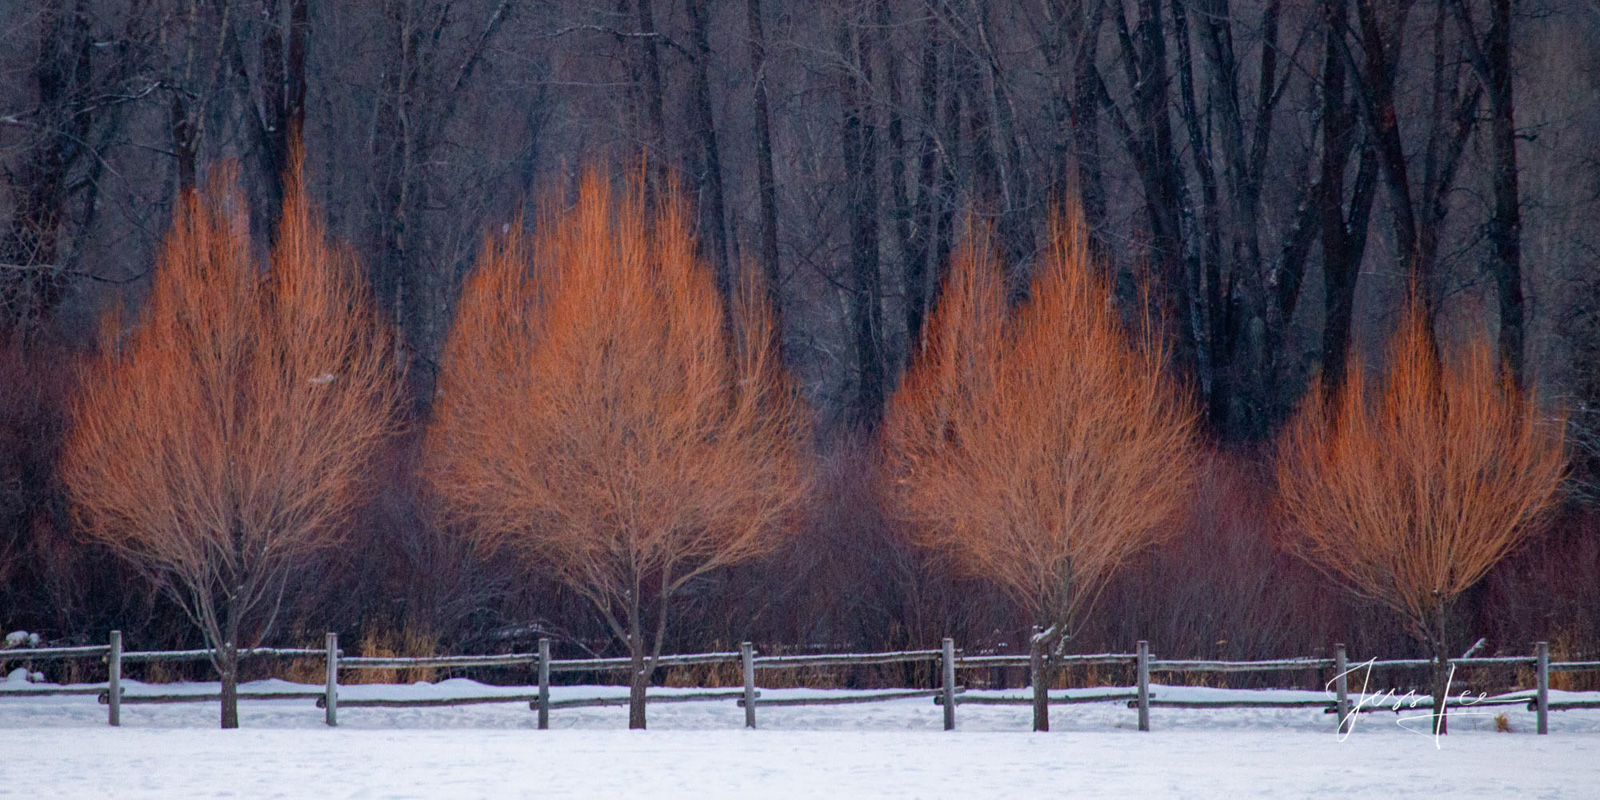 Fine Art Limited Edition Print of 250  Flaming willows used as a landscape decoration to add color to the long winter season...